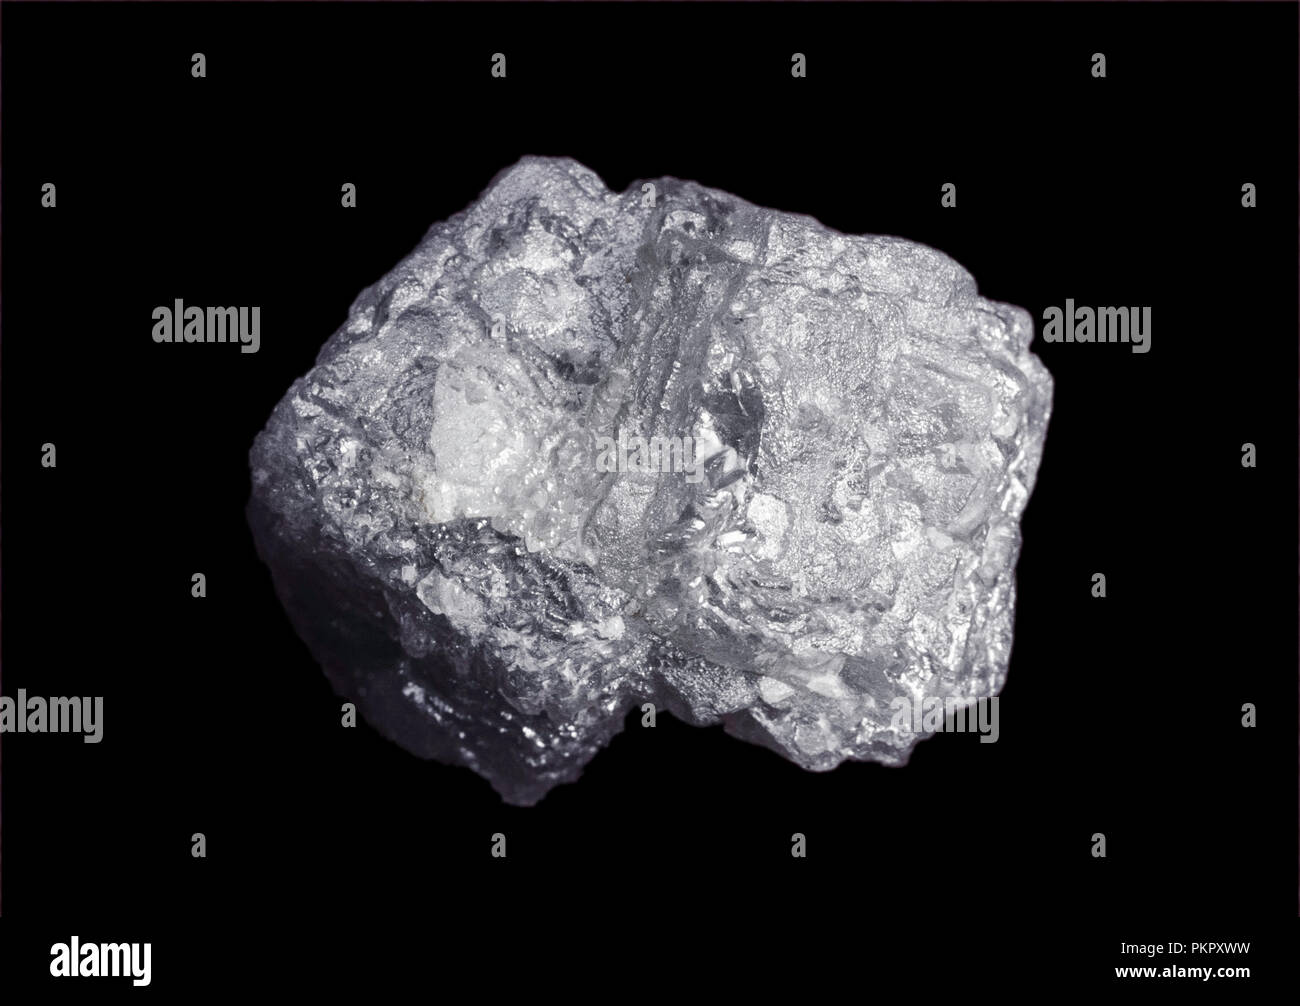 Uncut industrial grade diamond on black background, South Africa - Stock Image